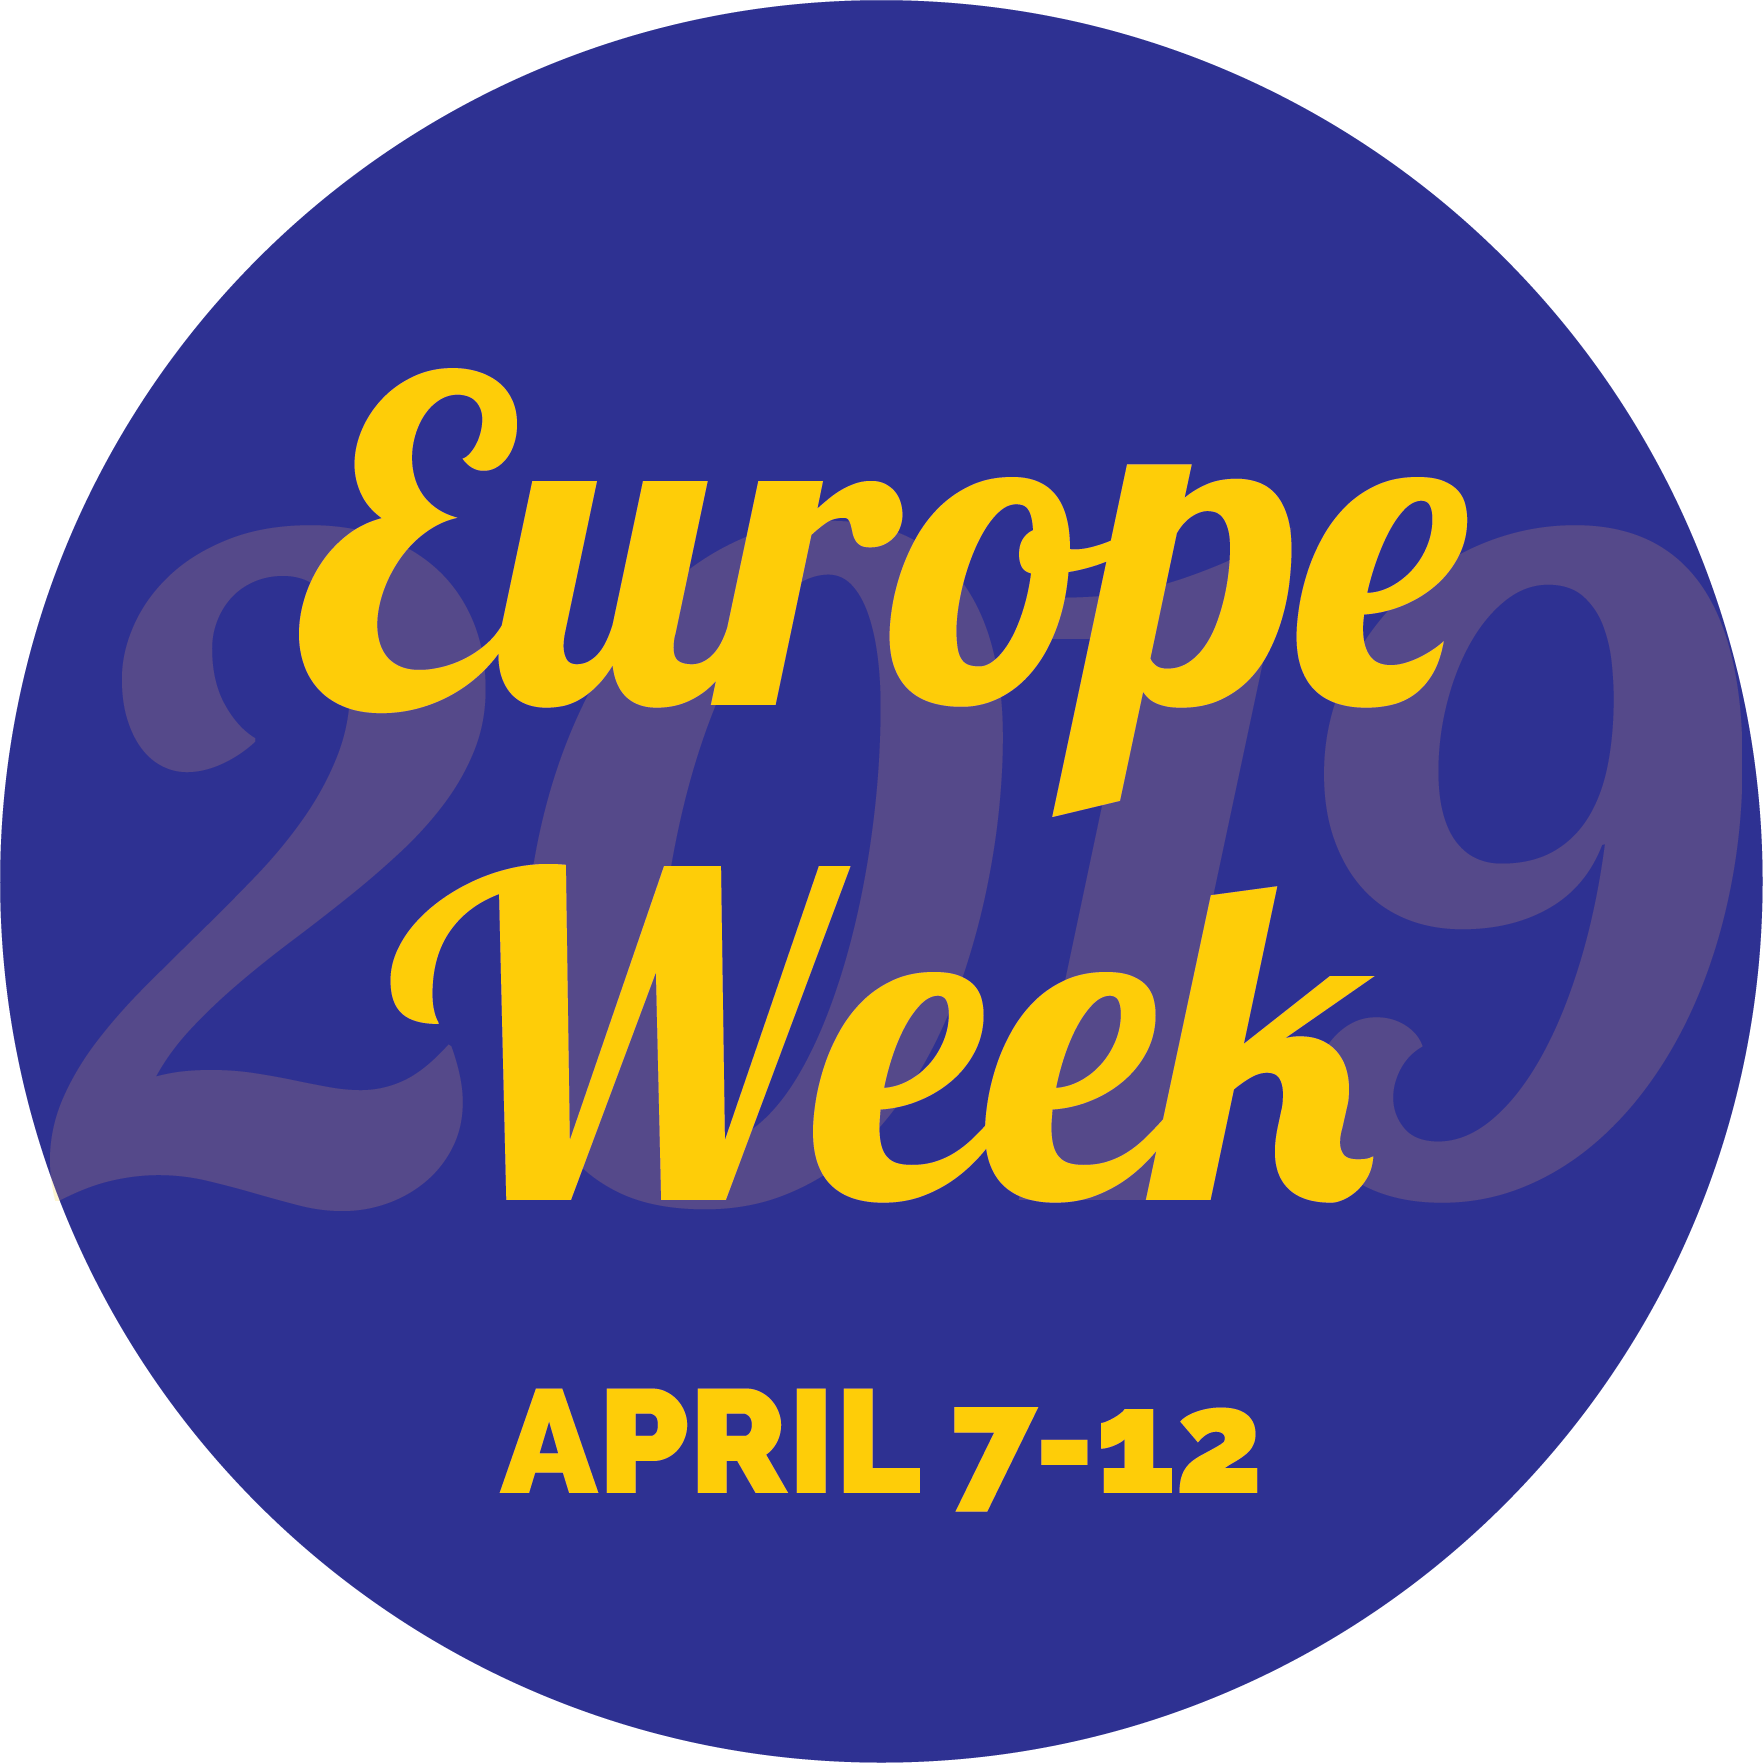 A Europe Week 2019 logo with dates April 7-12.